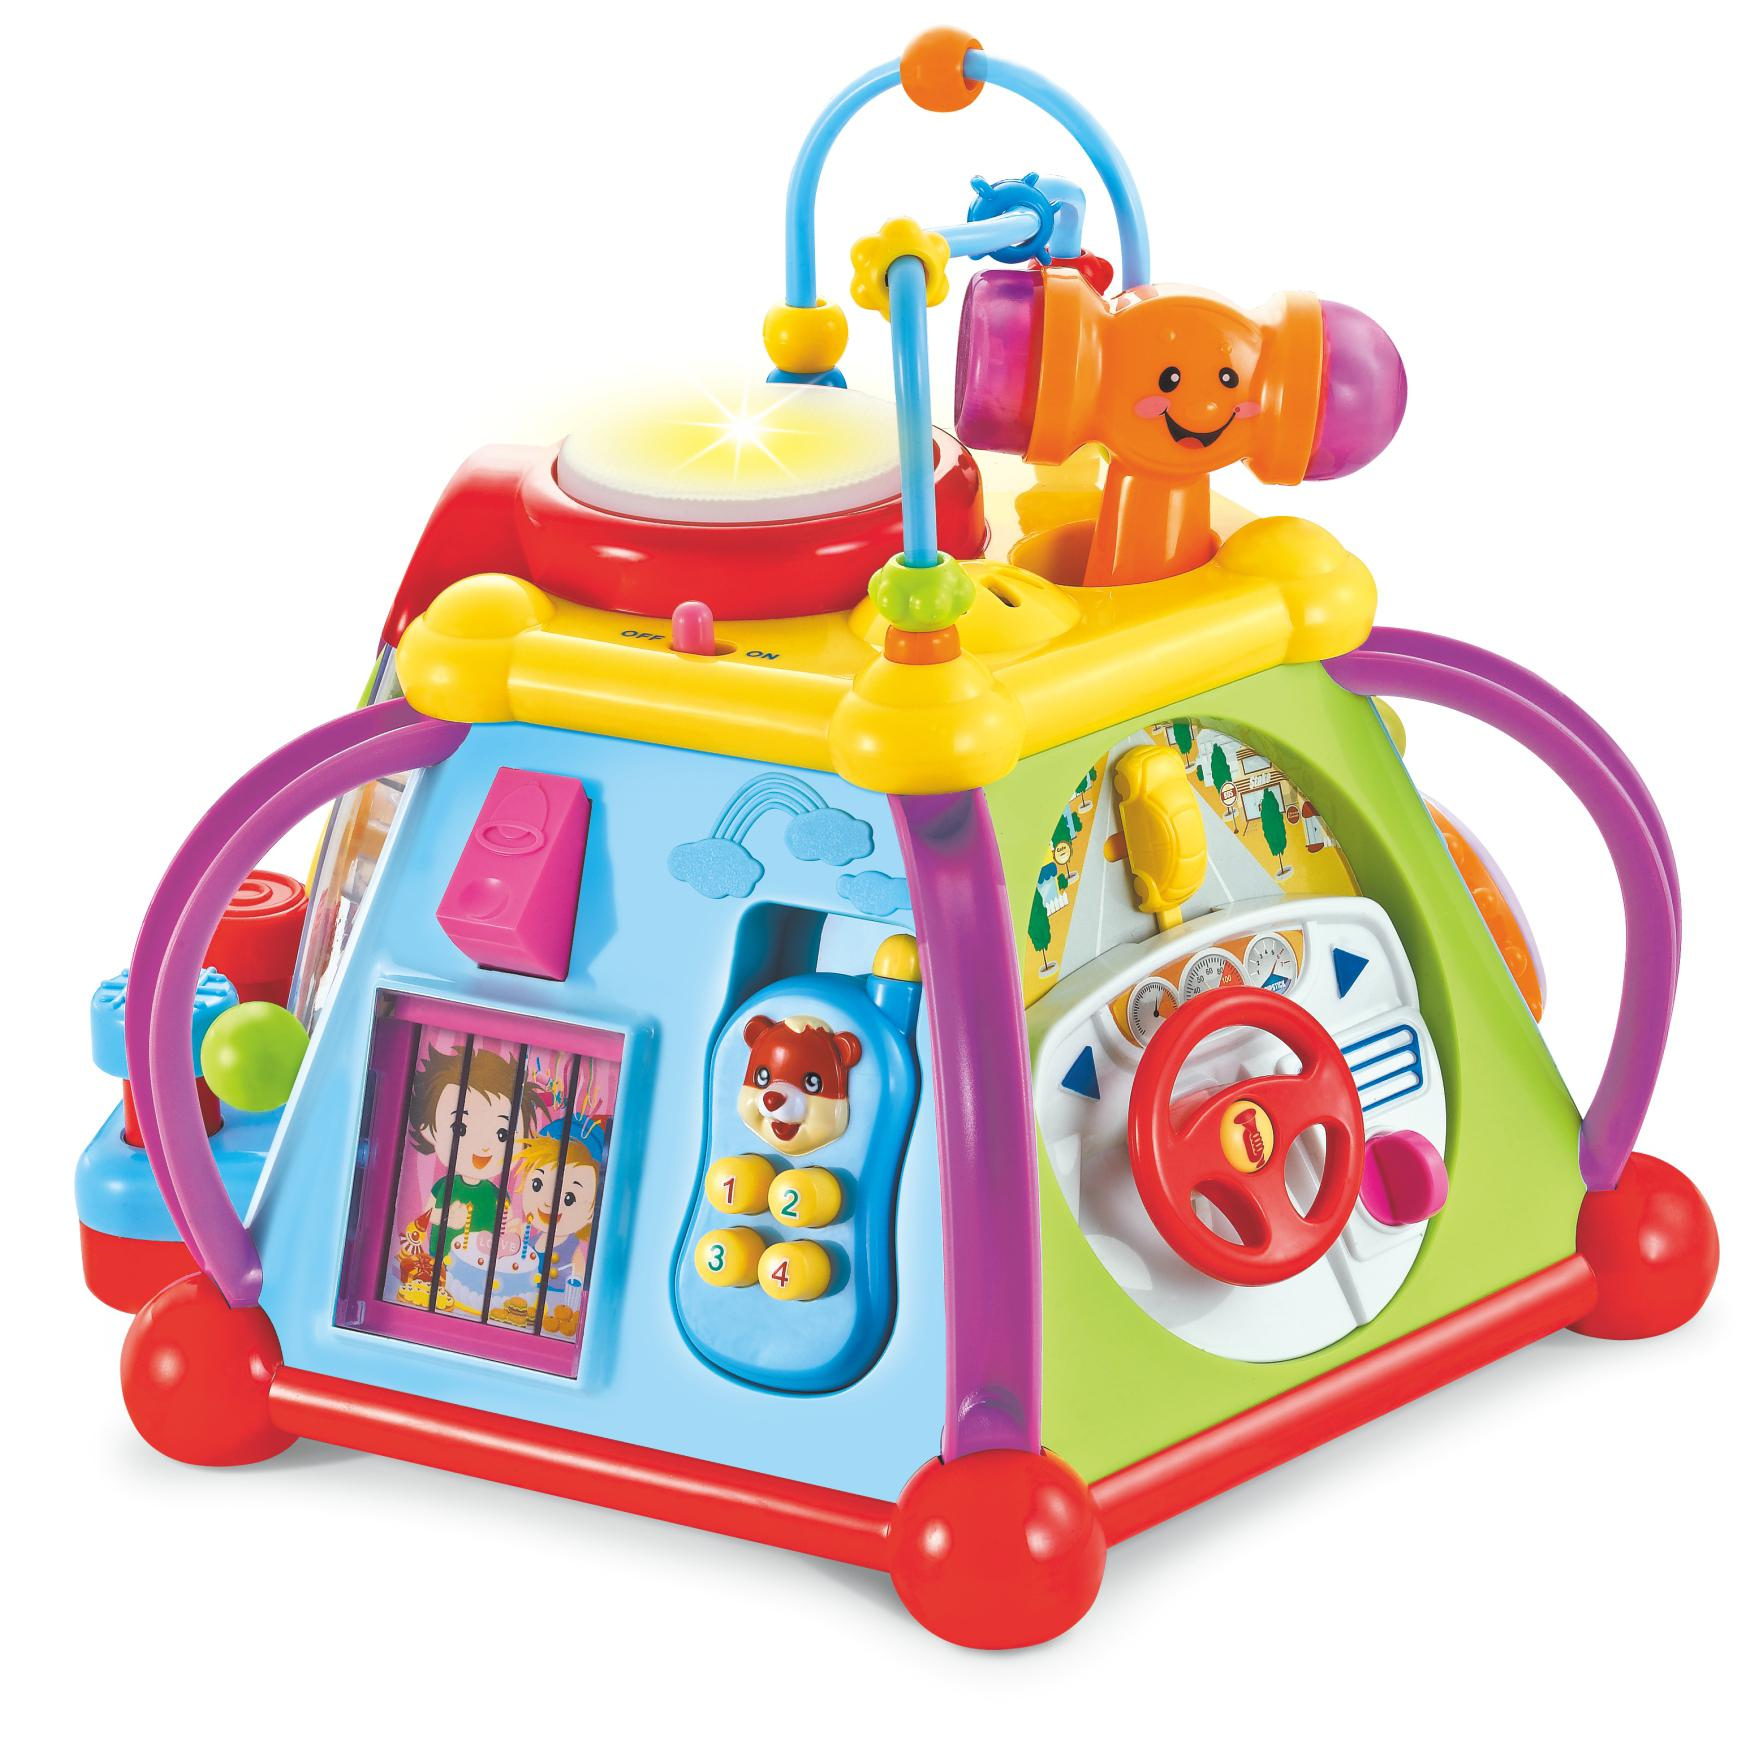 Tippi Musical Lights Multi Activity Centre Cube Baby Toddler